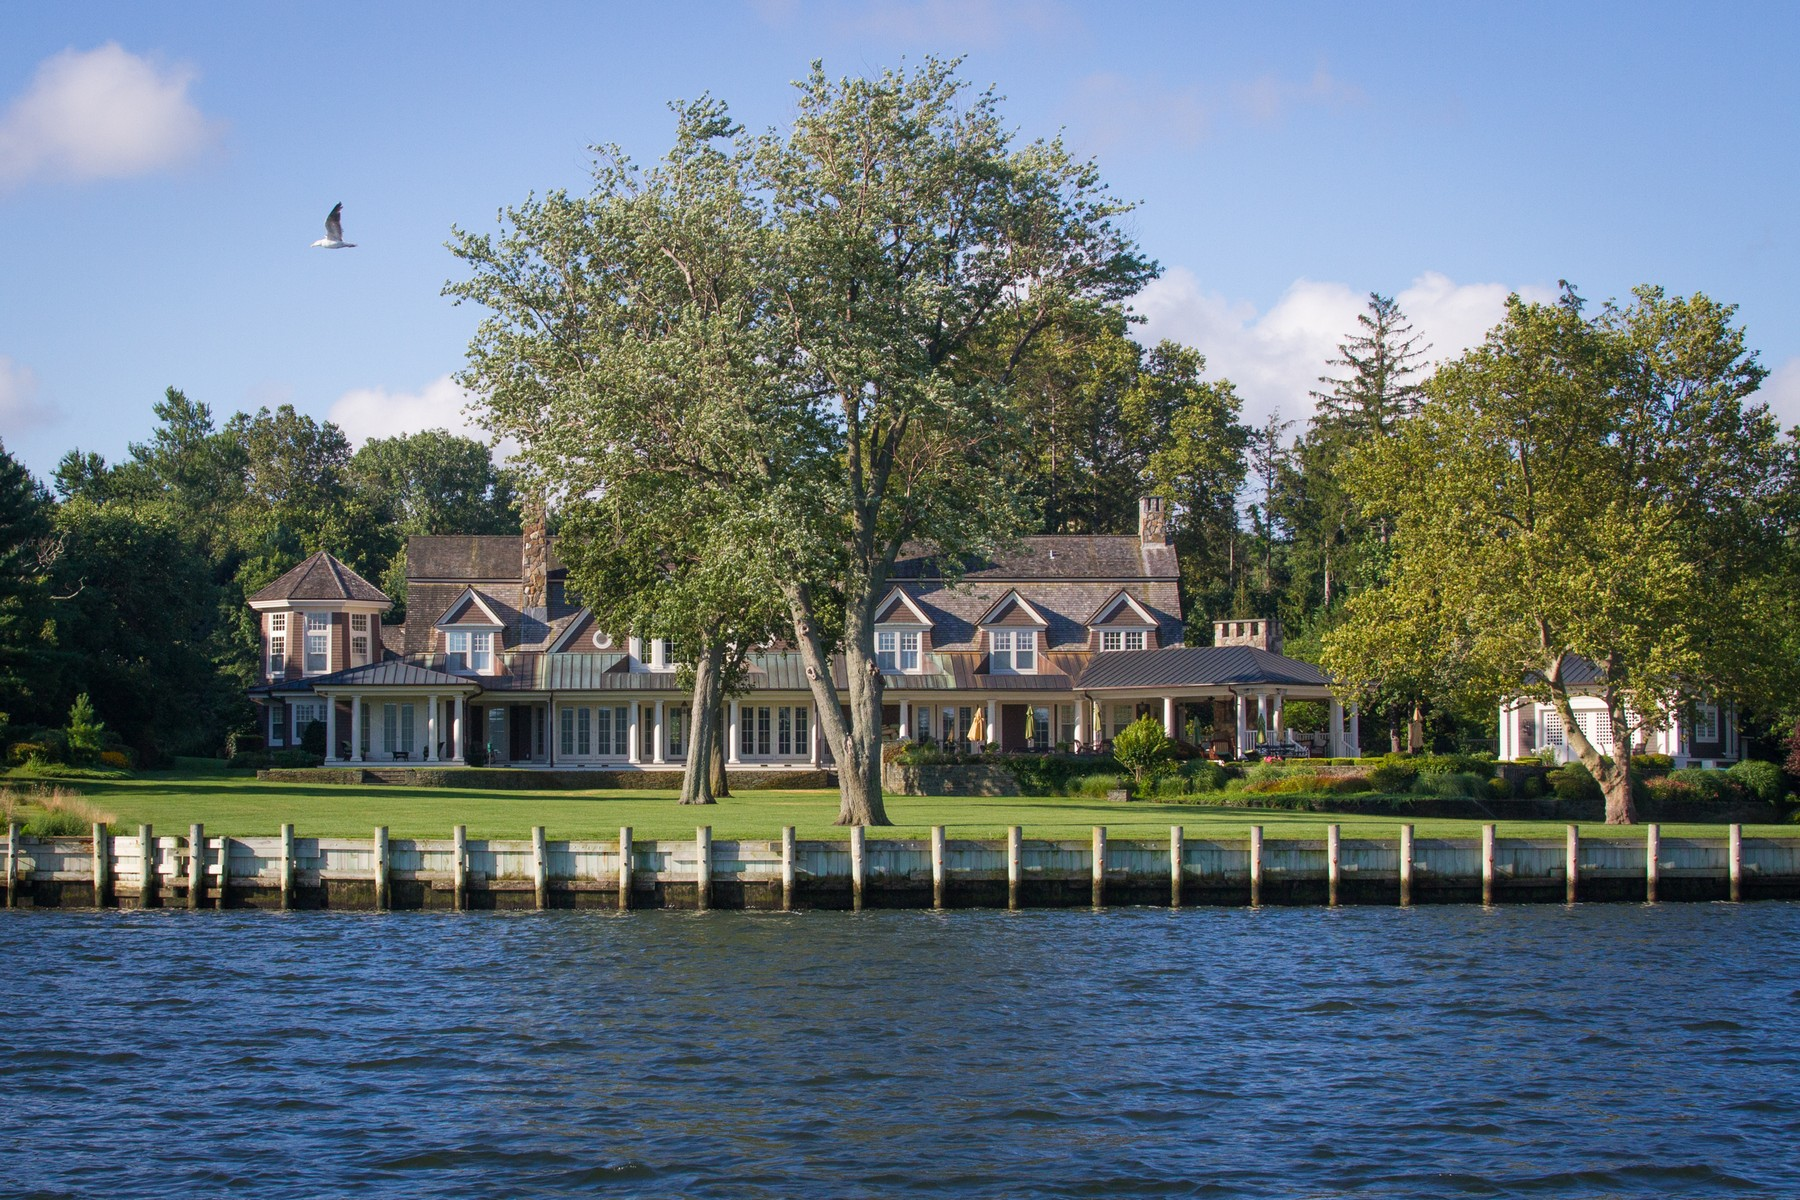 Single Family Home for Sale at Riverblades Estate 74 West River Road Rumson, 07760 United States